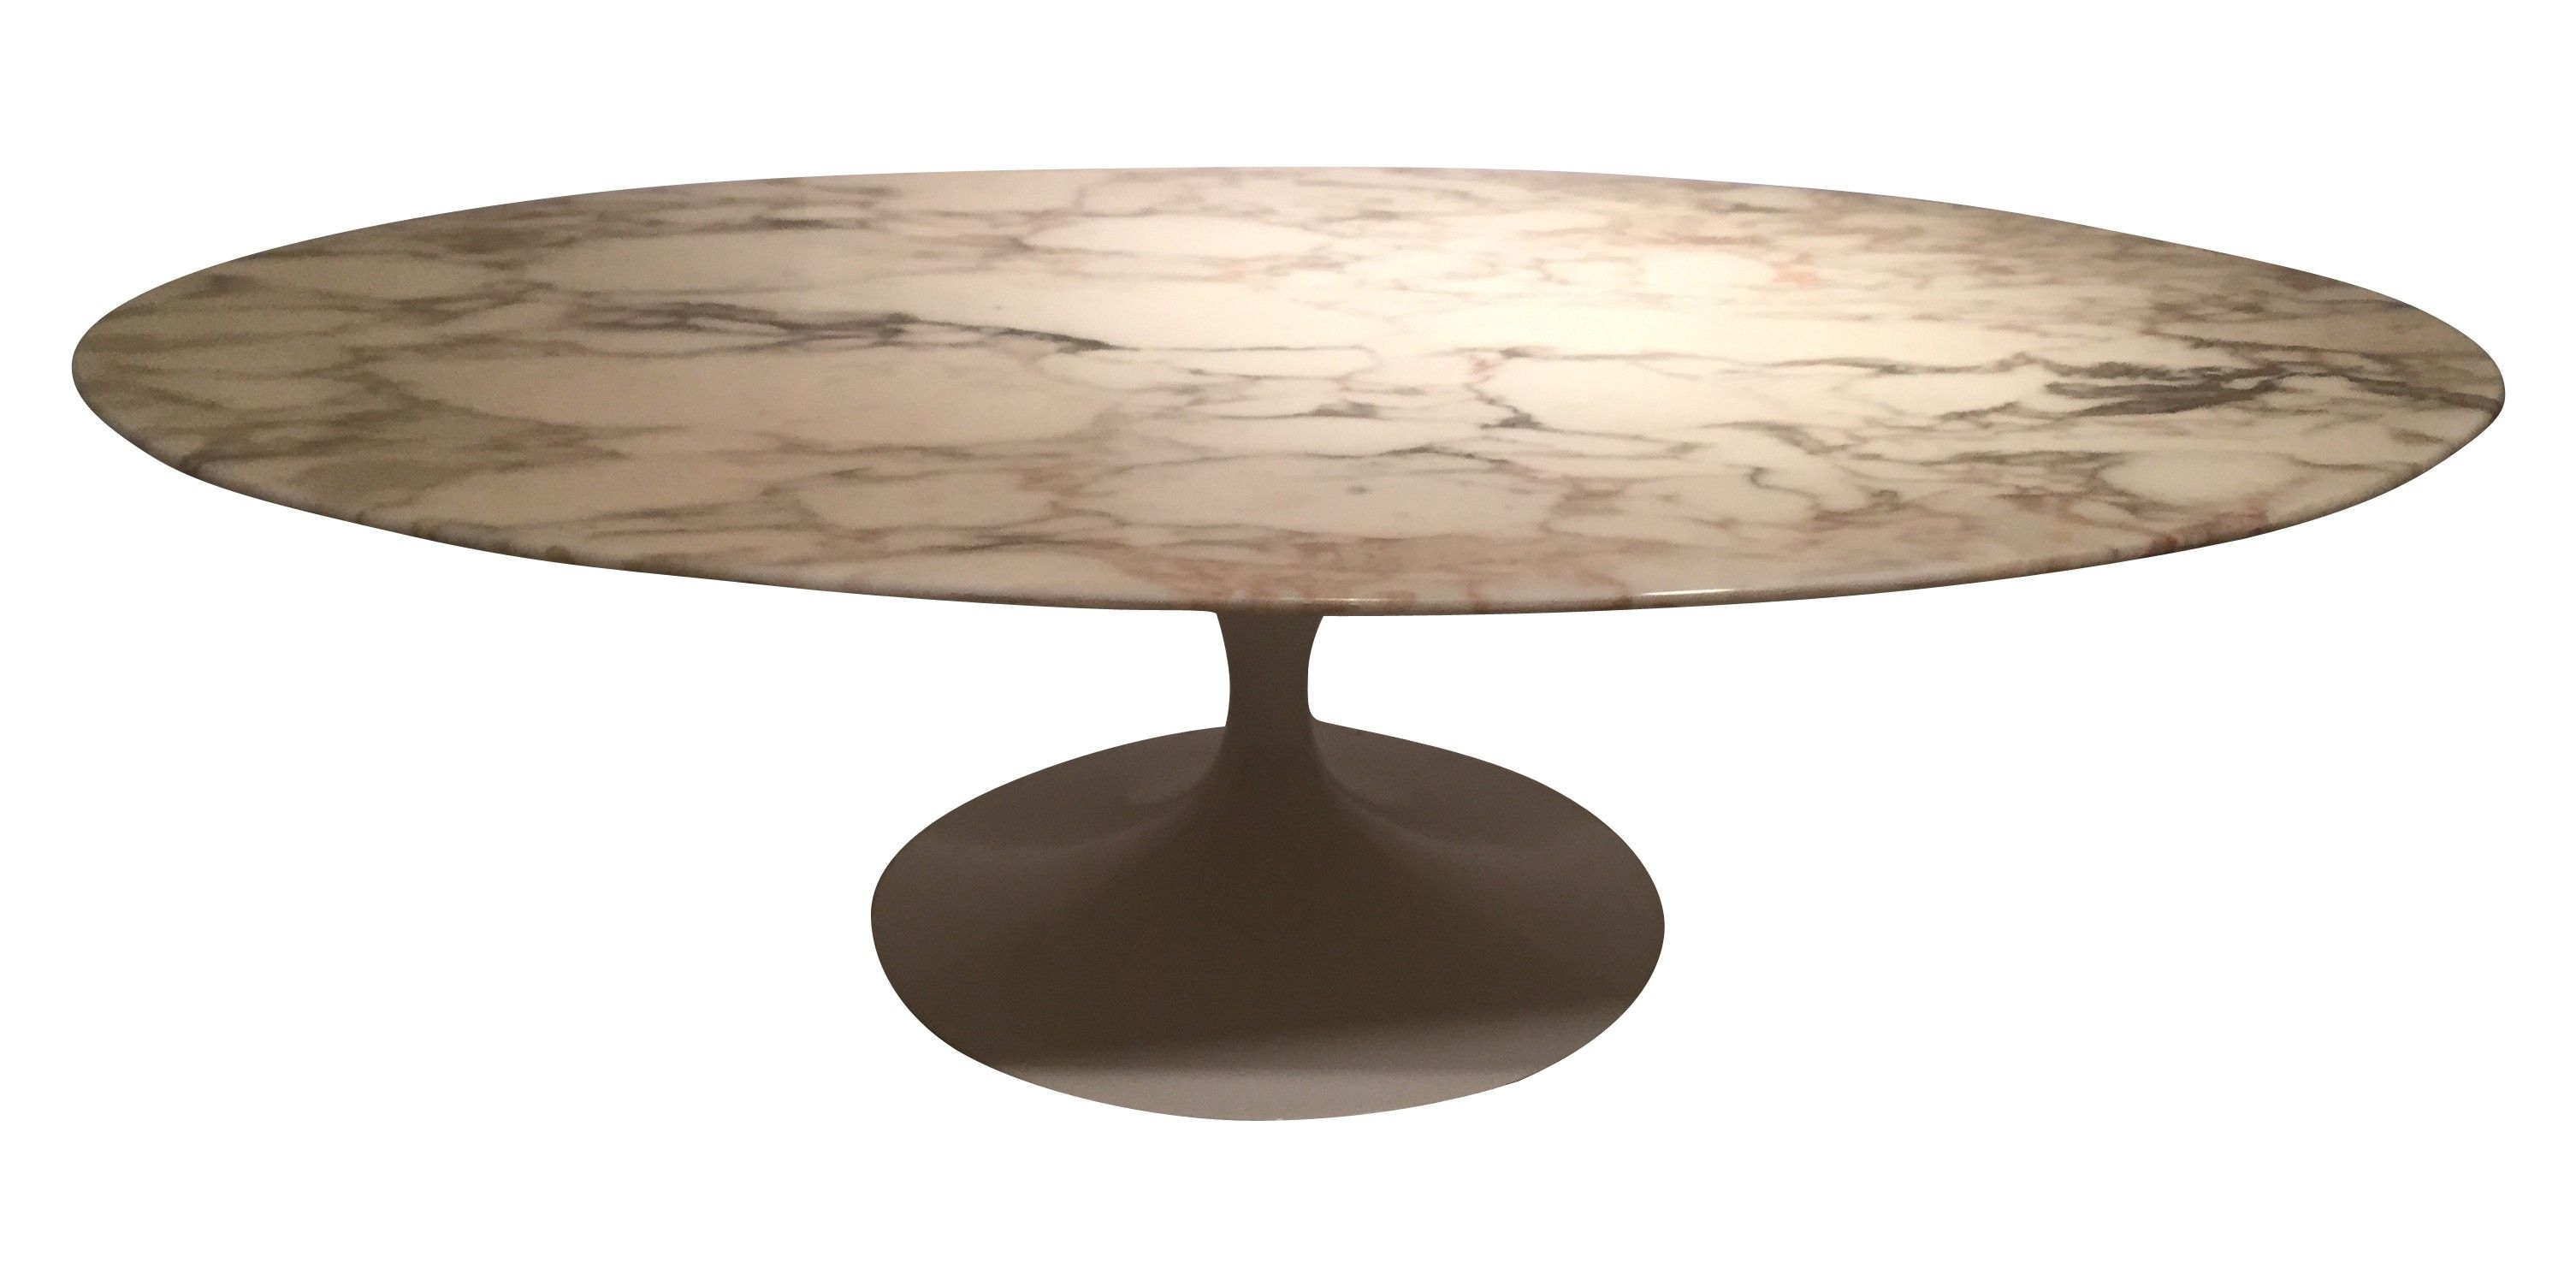 Grande table basse ovale en marbre eero saarinen ann es for Table basse design noir